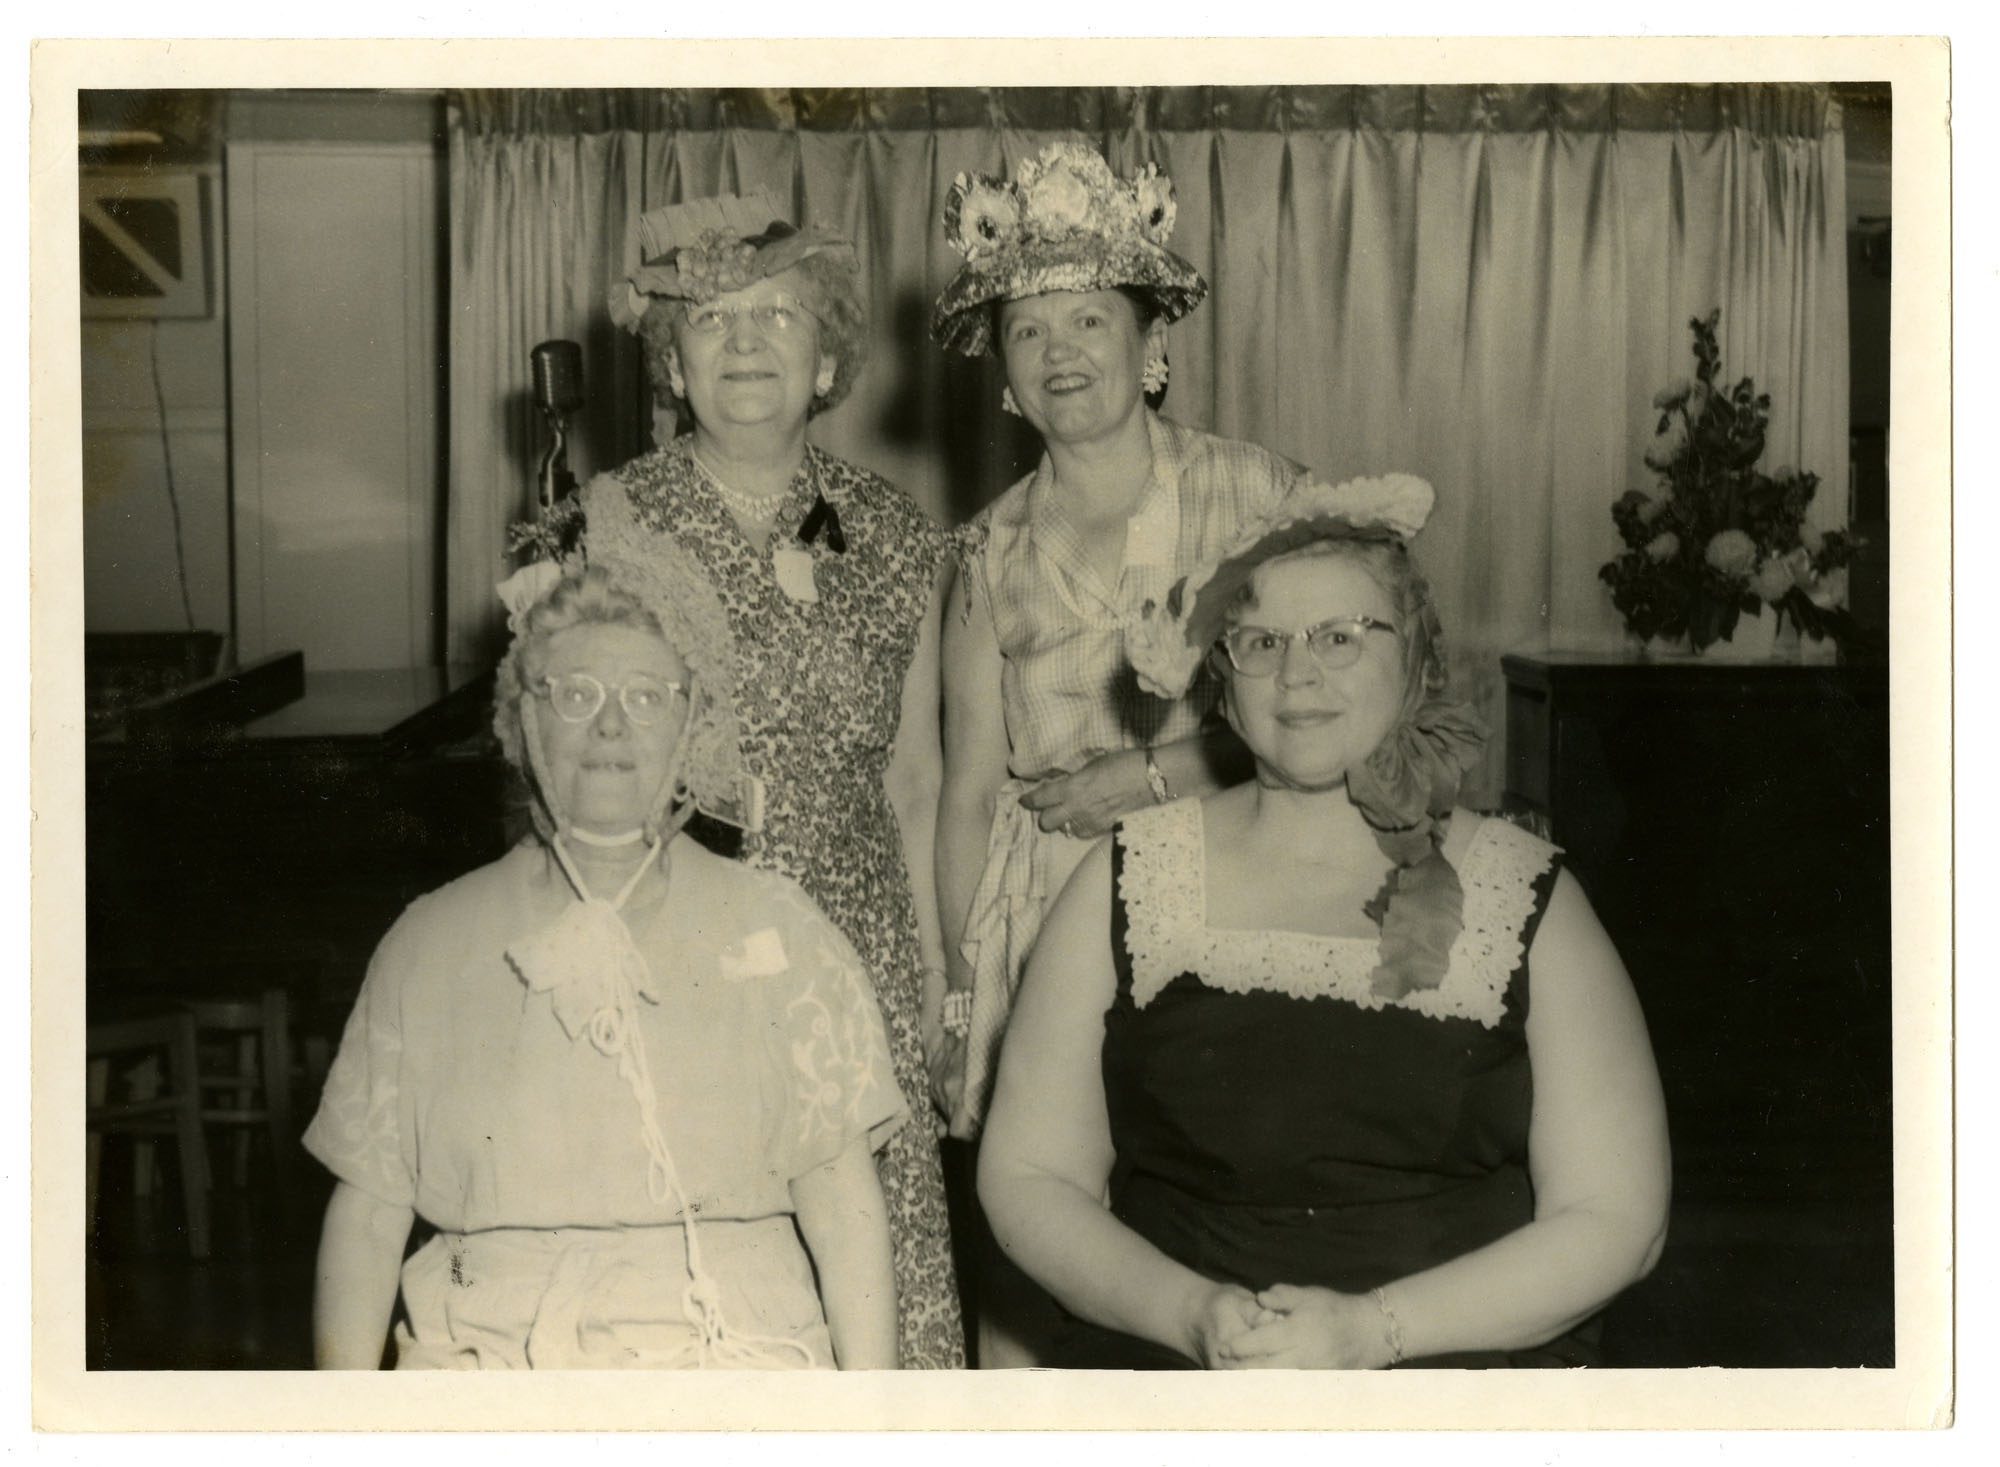 Carrie Pollitzer (left front) and women with hand-made hats